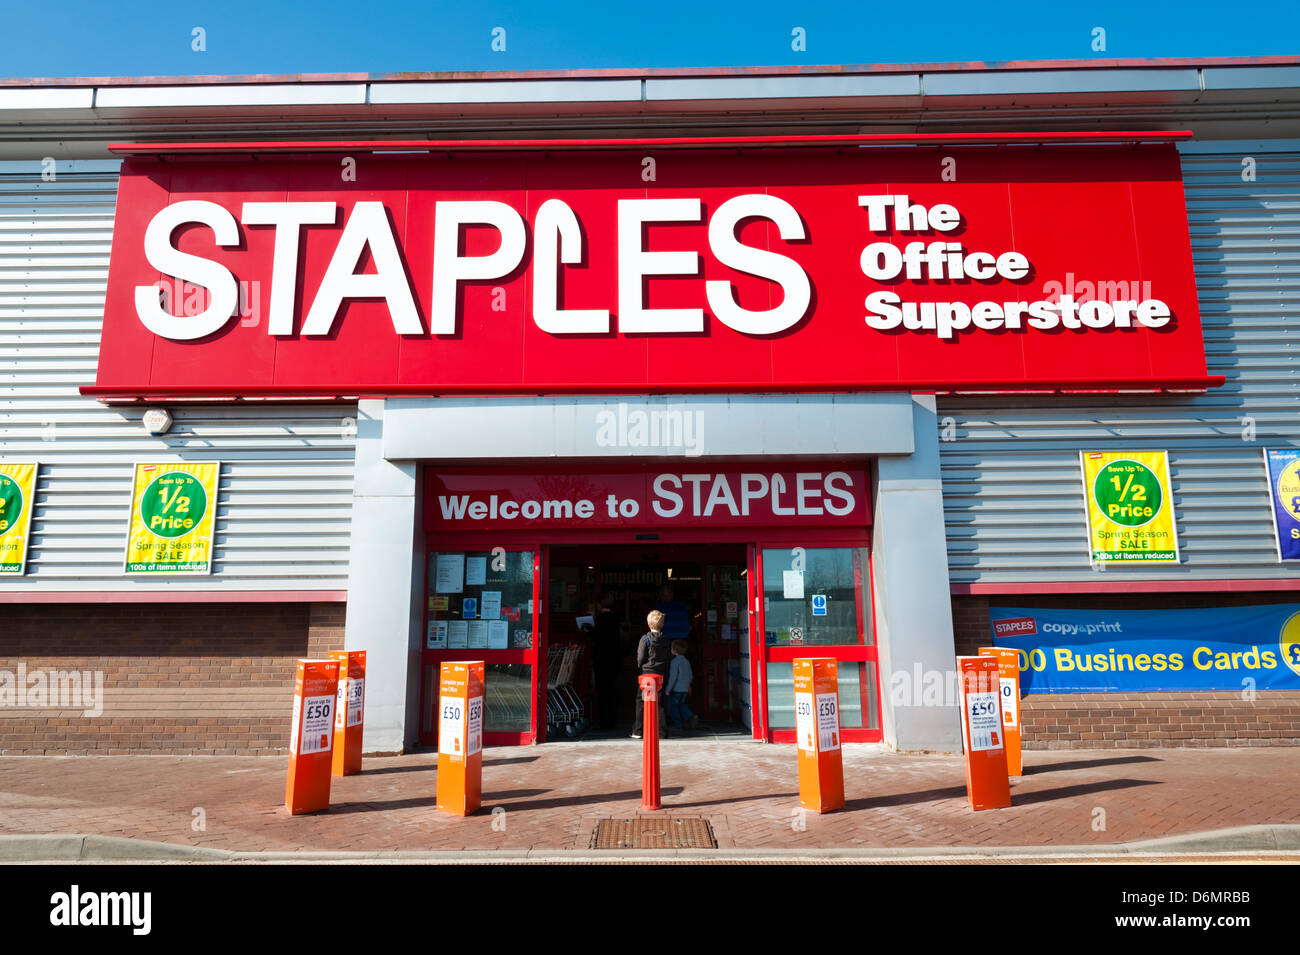 Staples store in the UK. - Stock Image